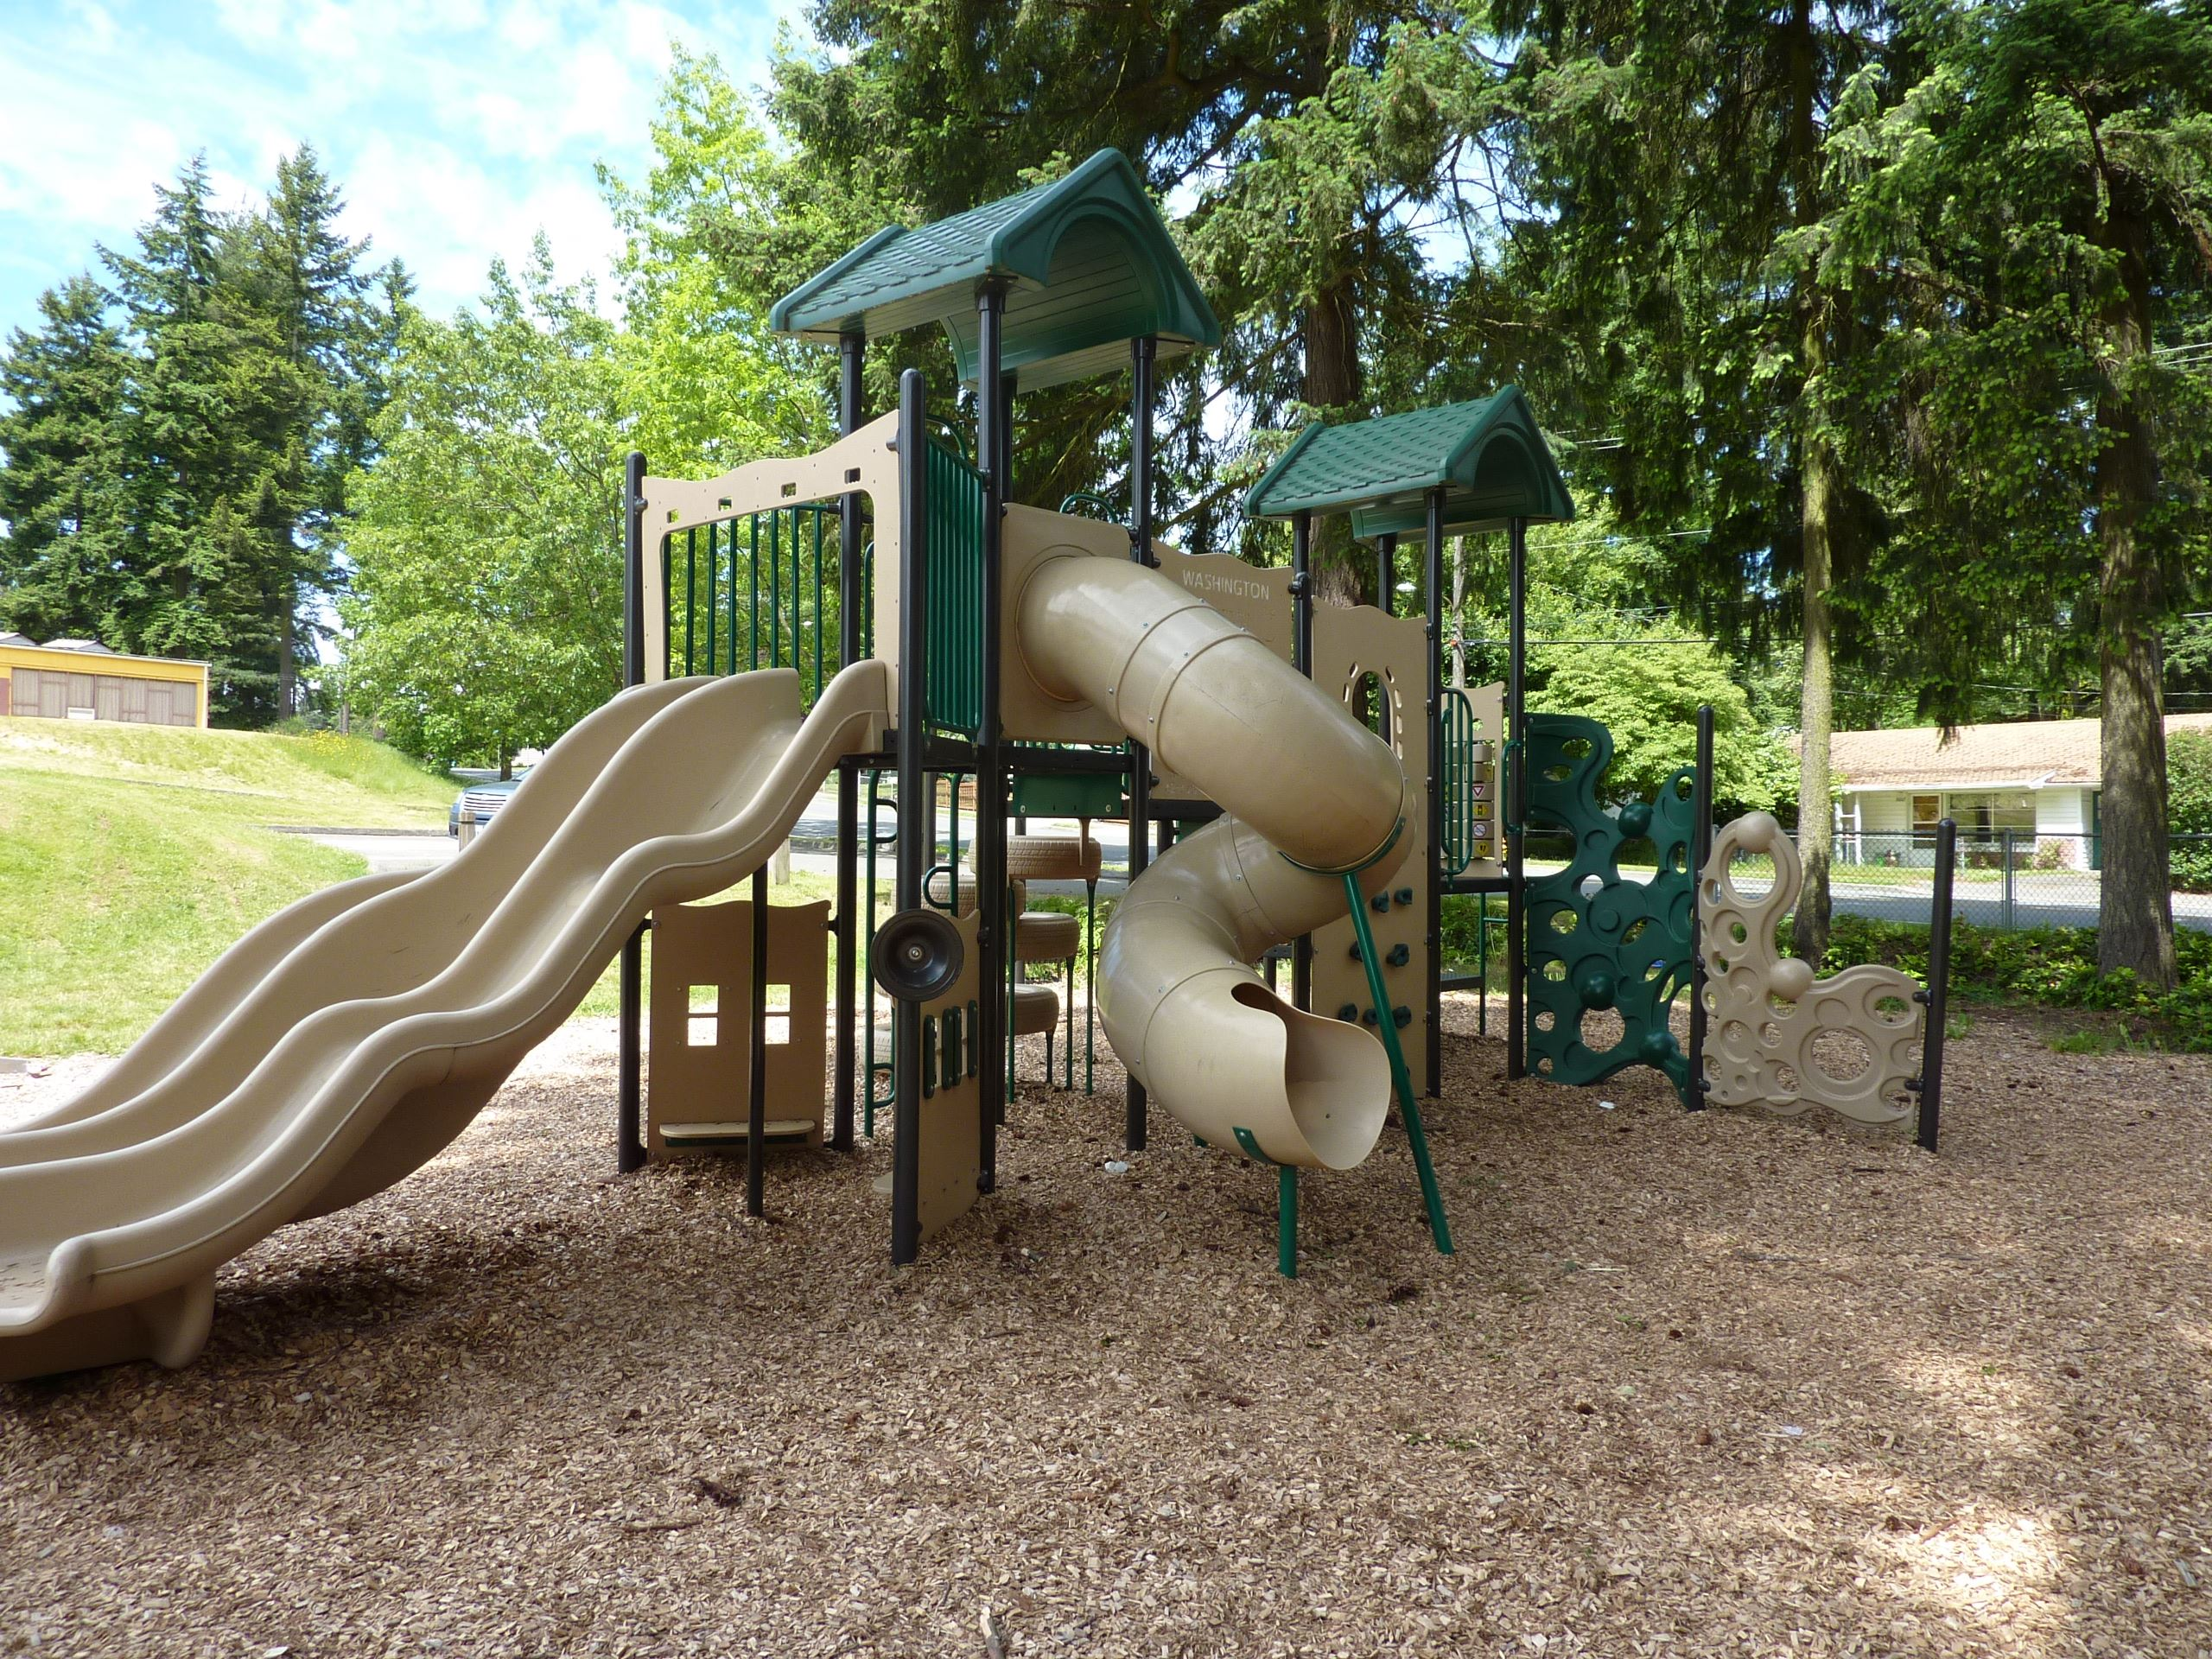 Play Equipment at Forest Crest Playfield